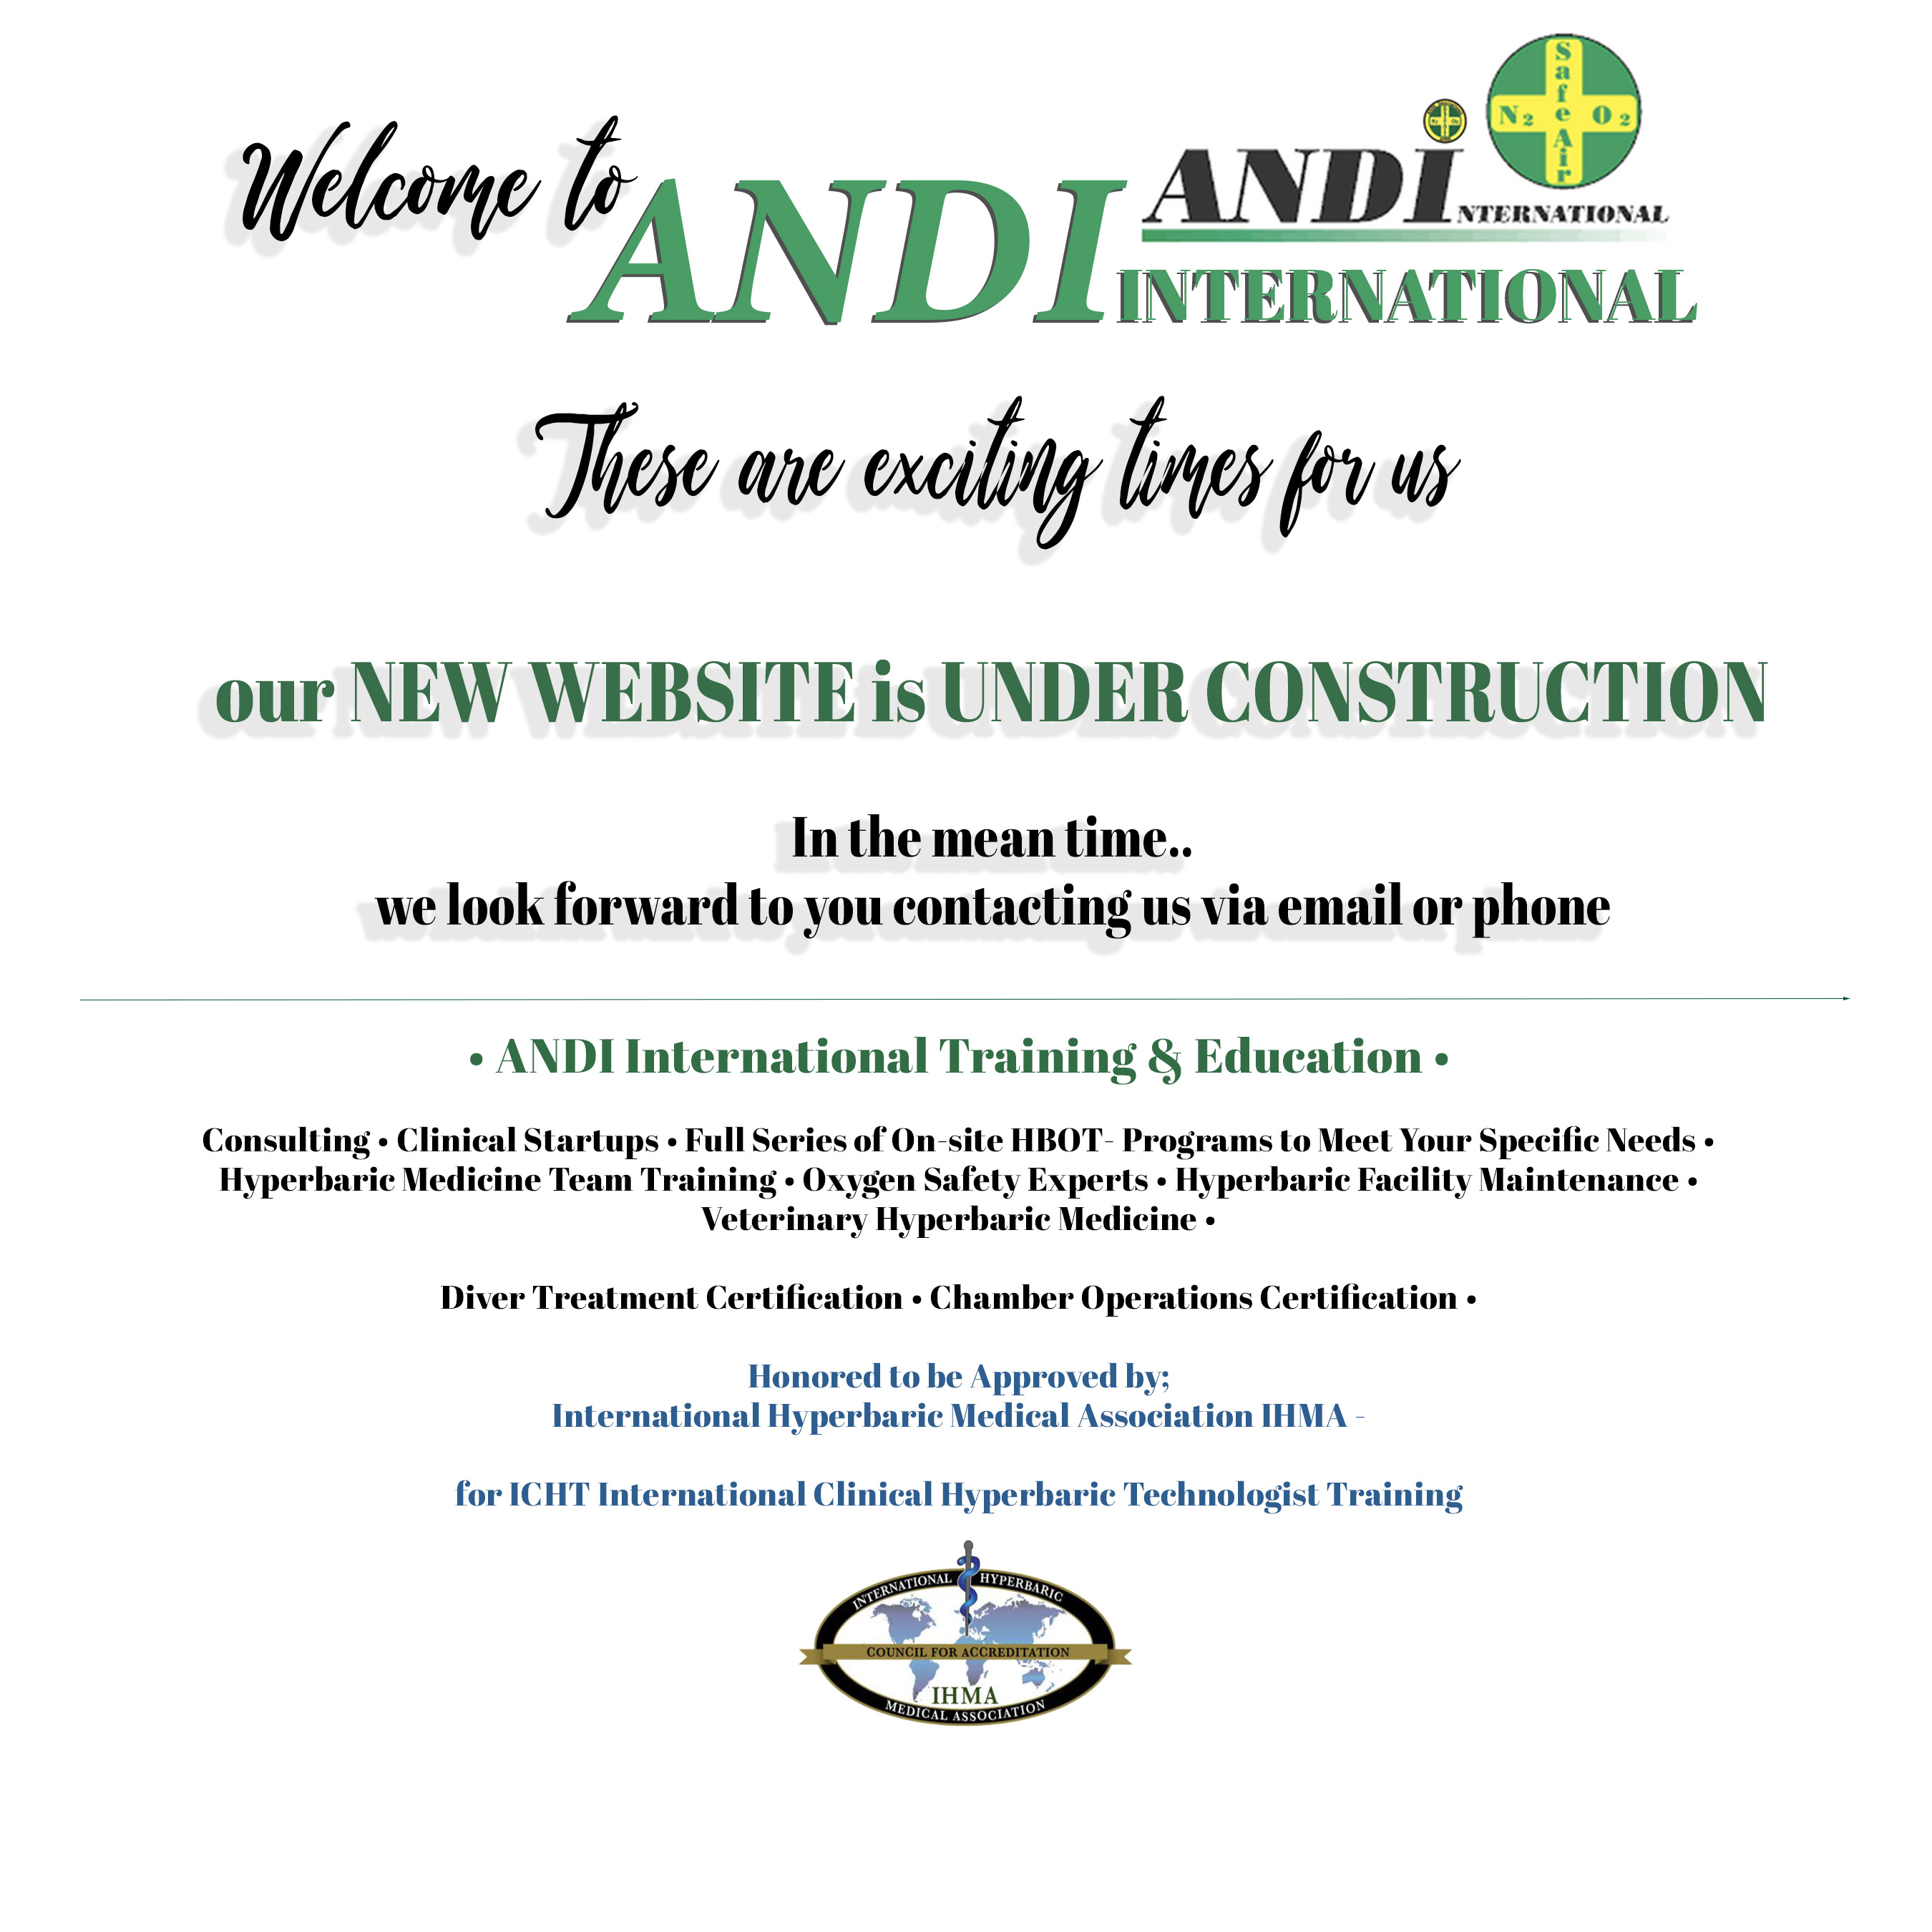 ANDI HOME PAGE